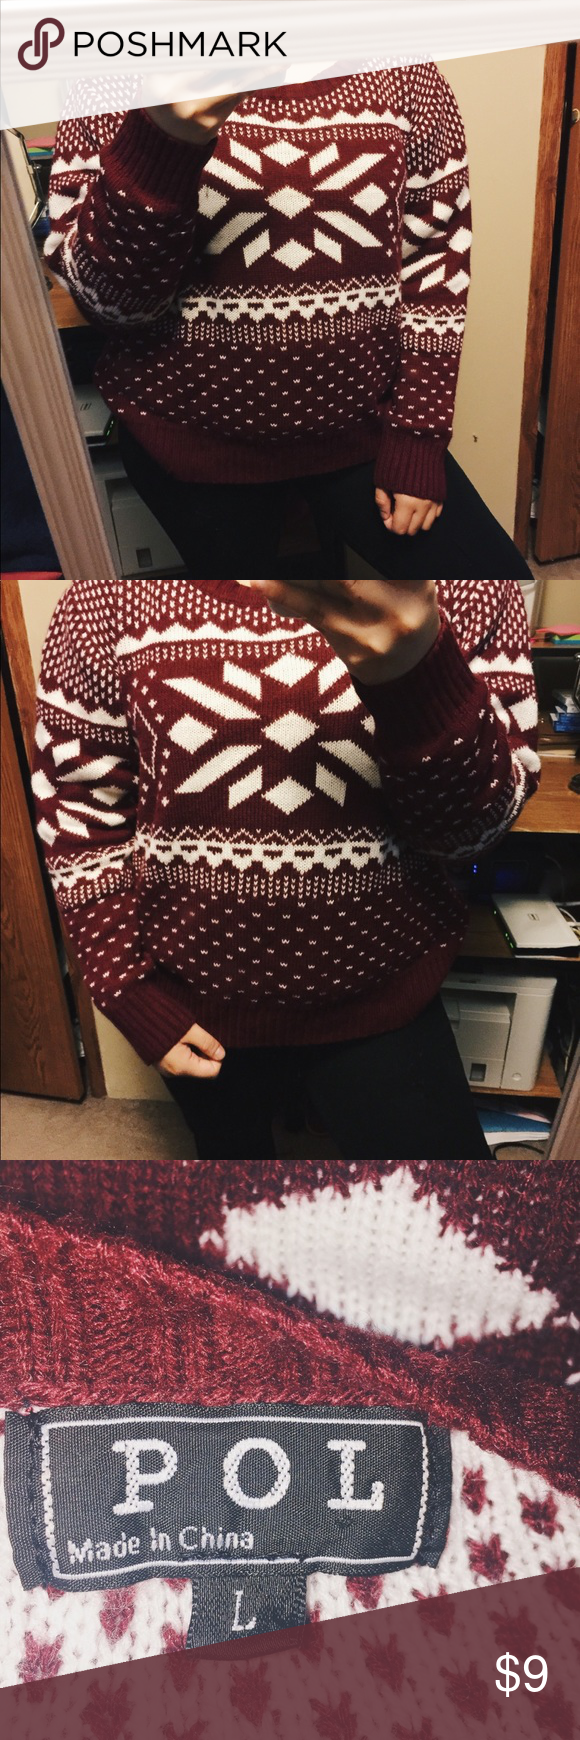 18973d5c3ac Christmas Inspired Sweater No stains